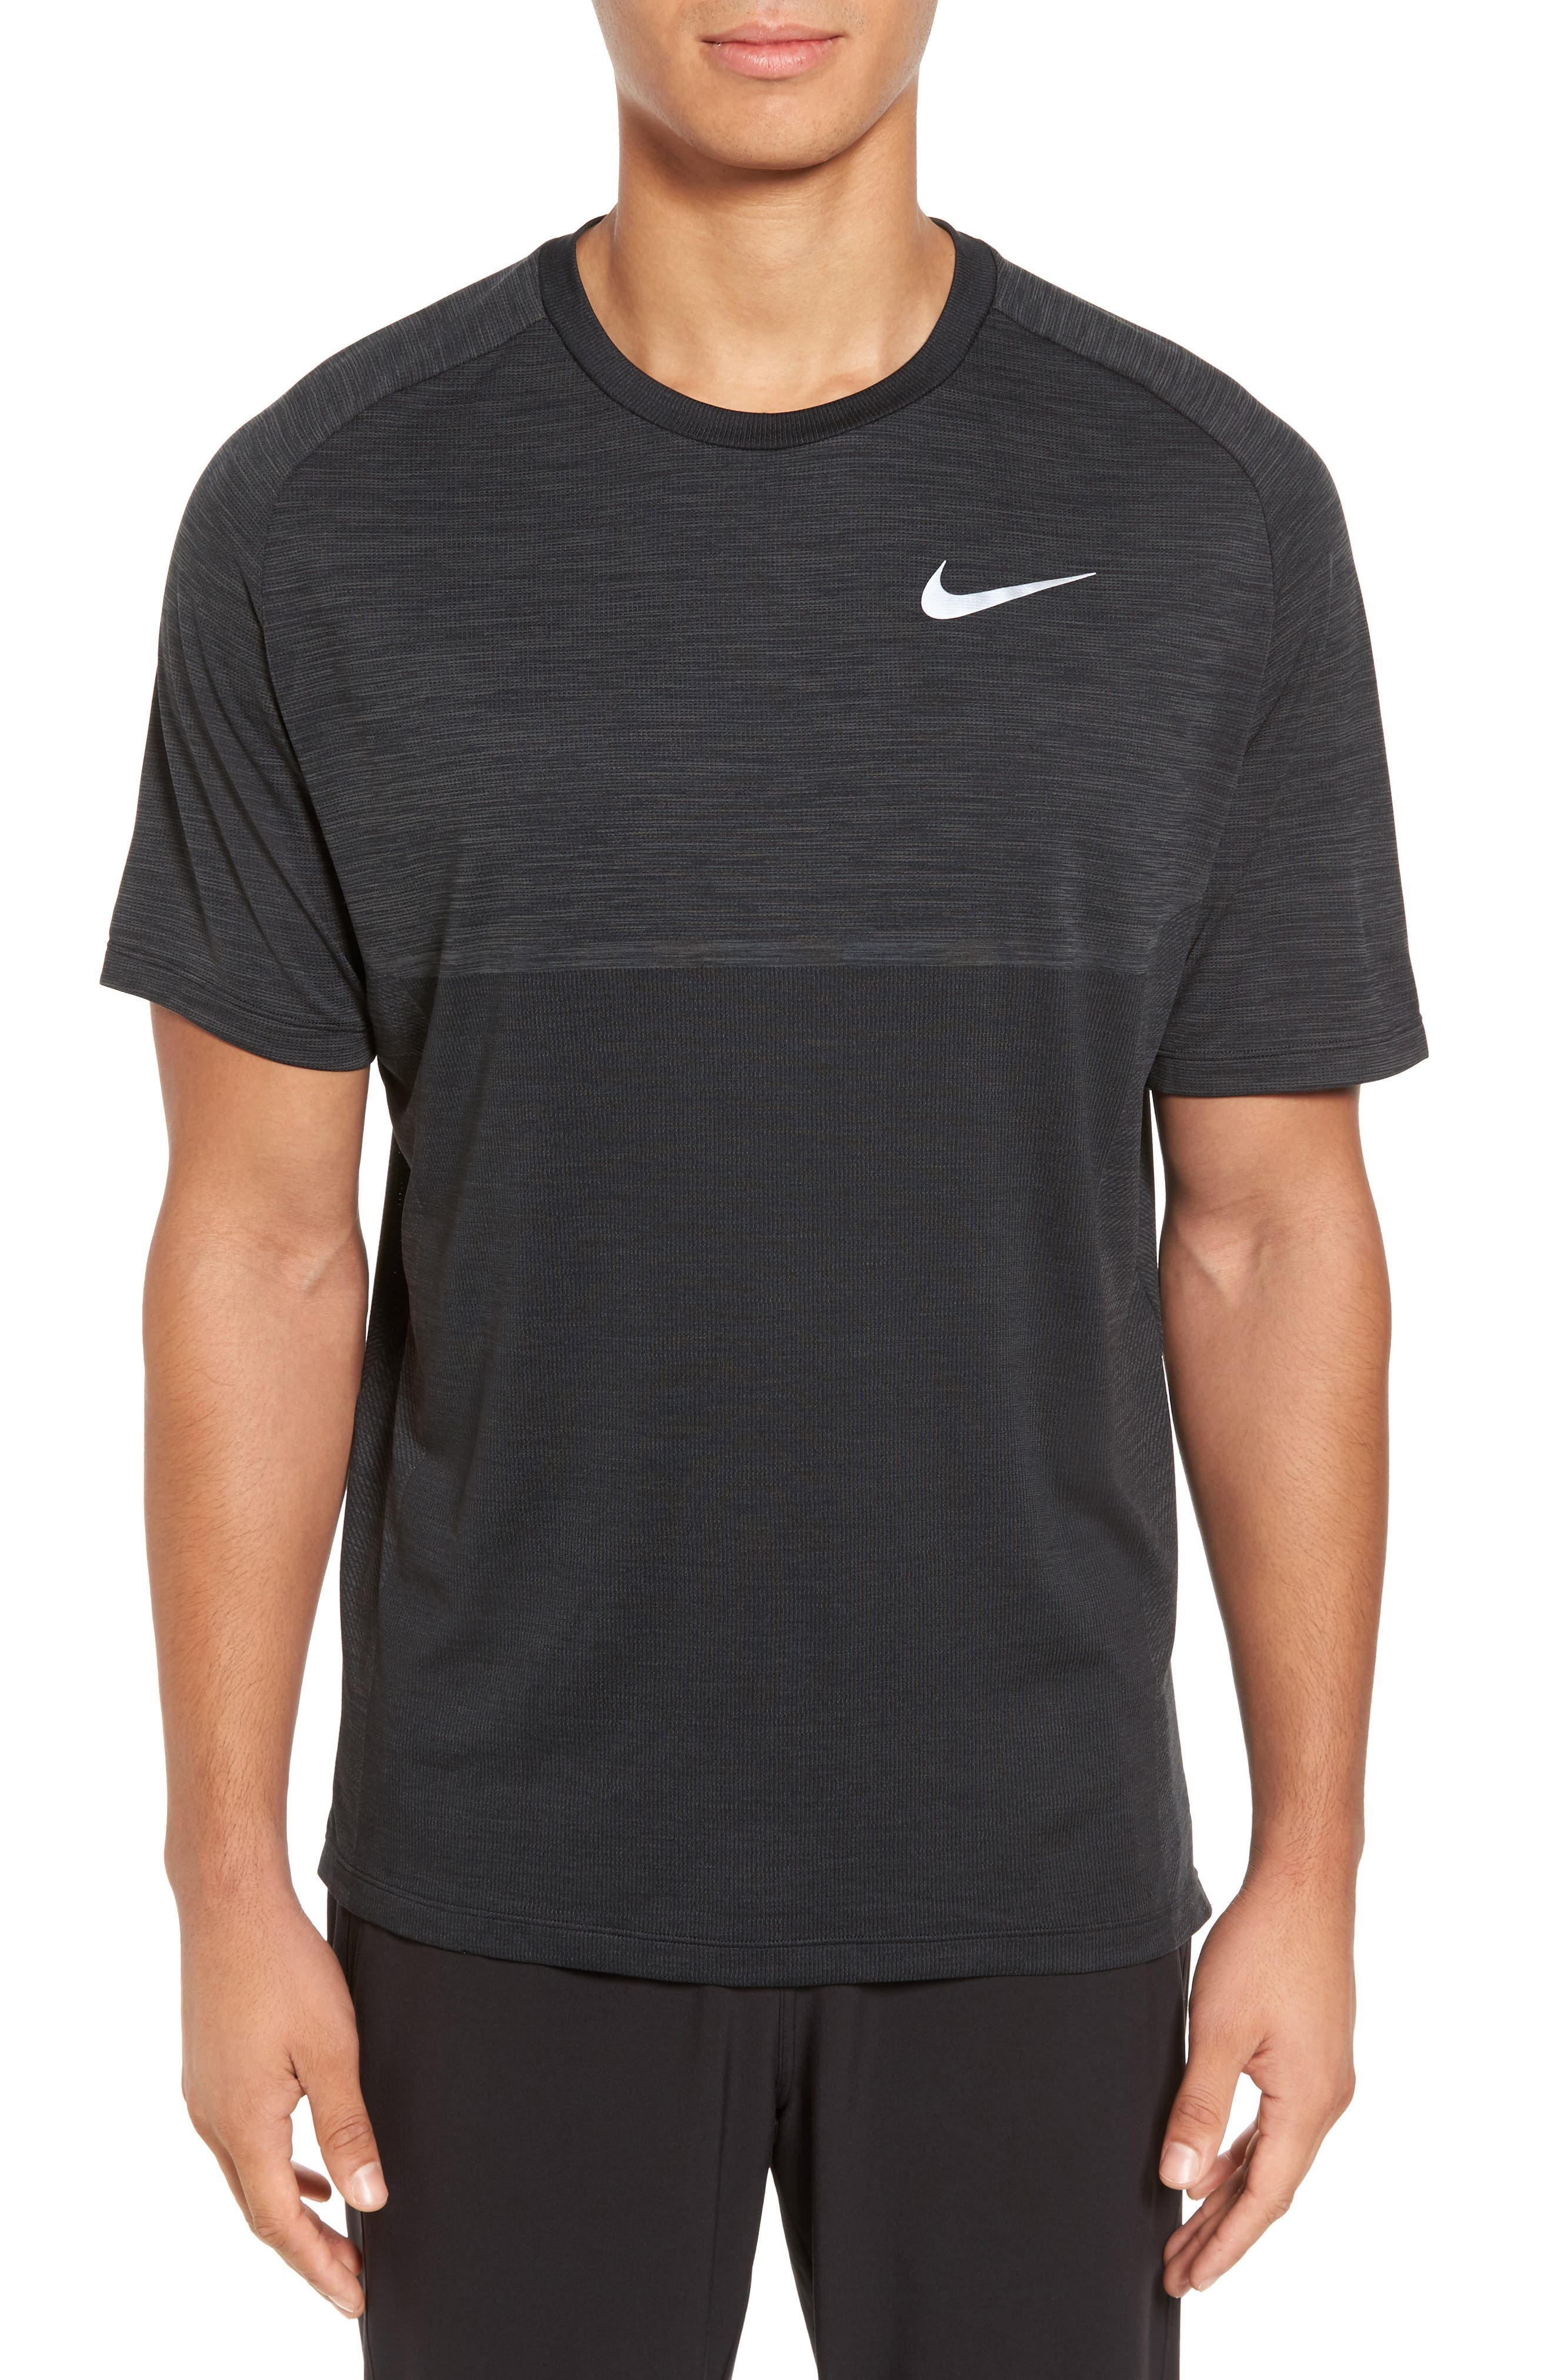 Dry Medalist Running Top,                         Main,                         color, ANTHRACITE/ BLACK